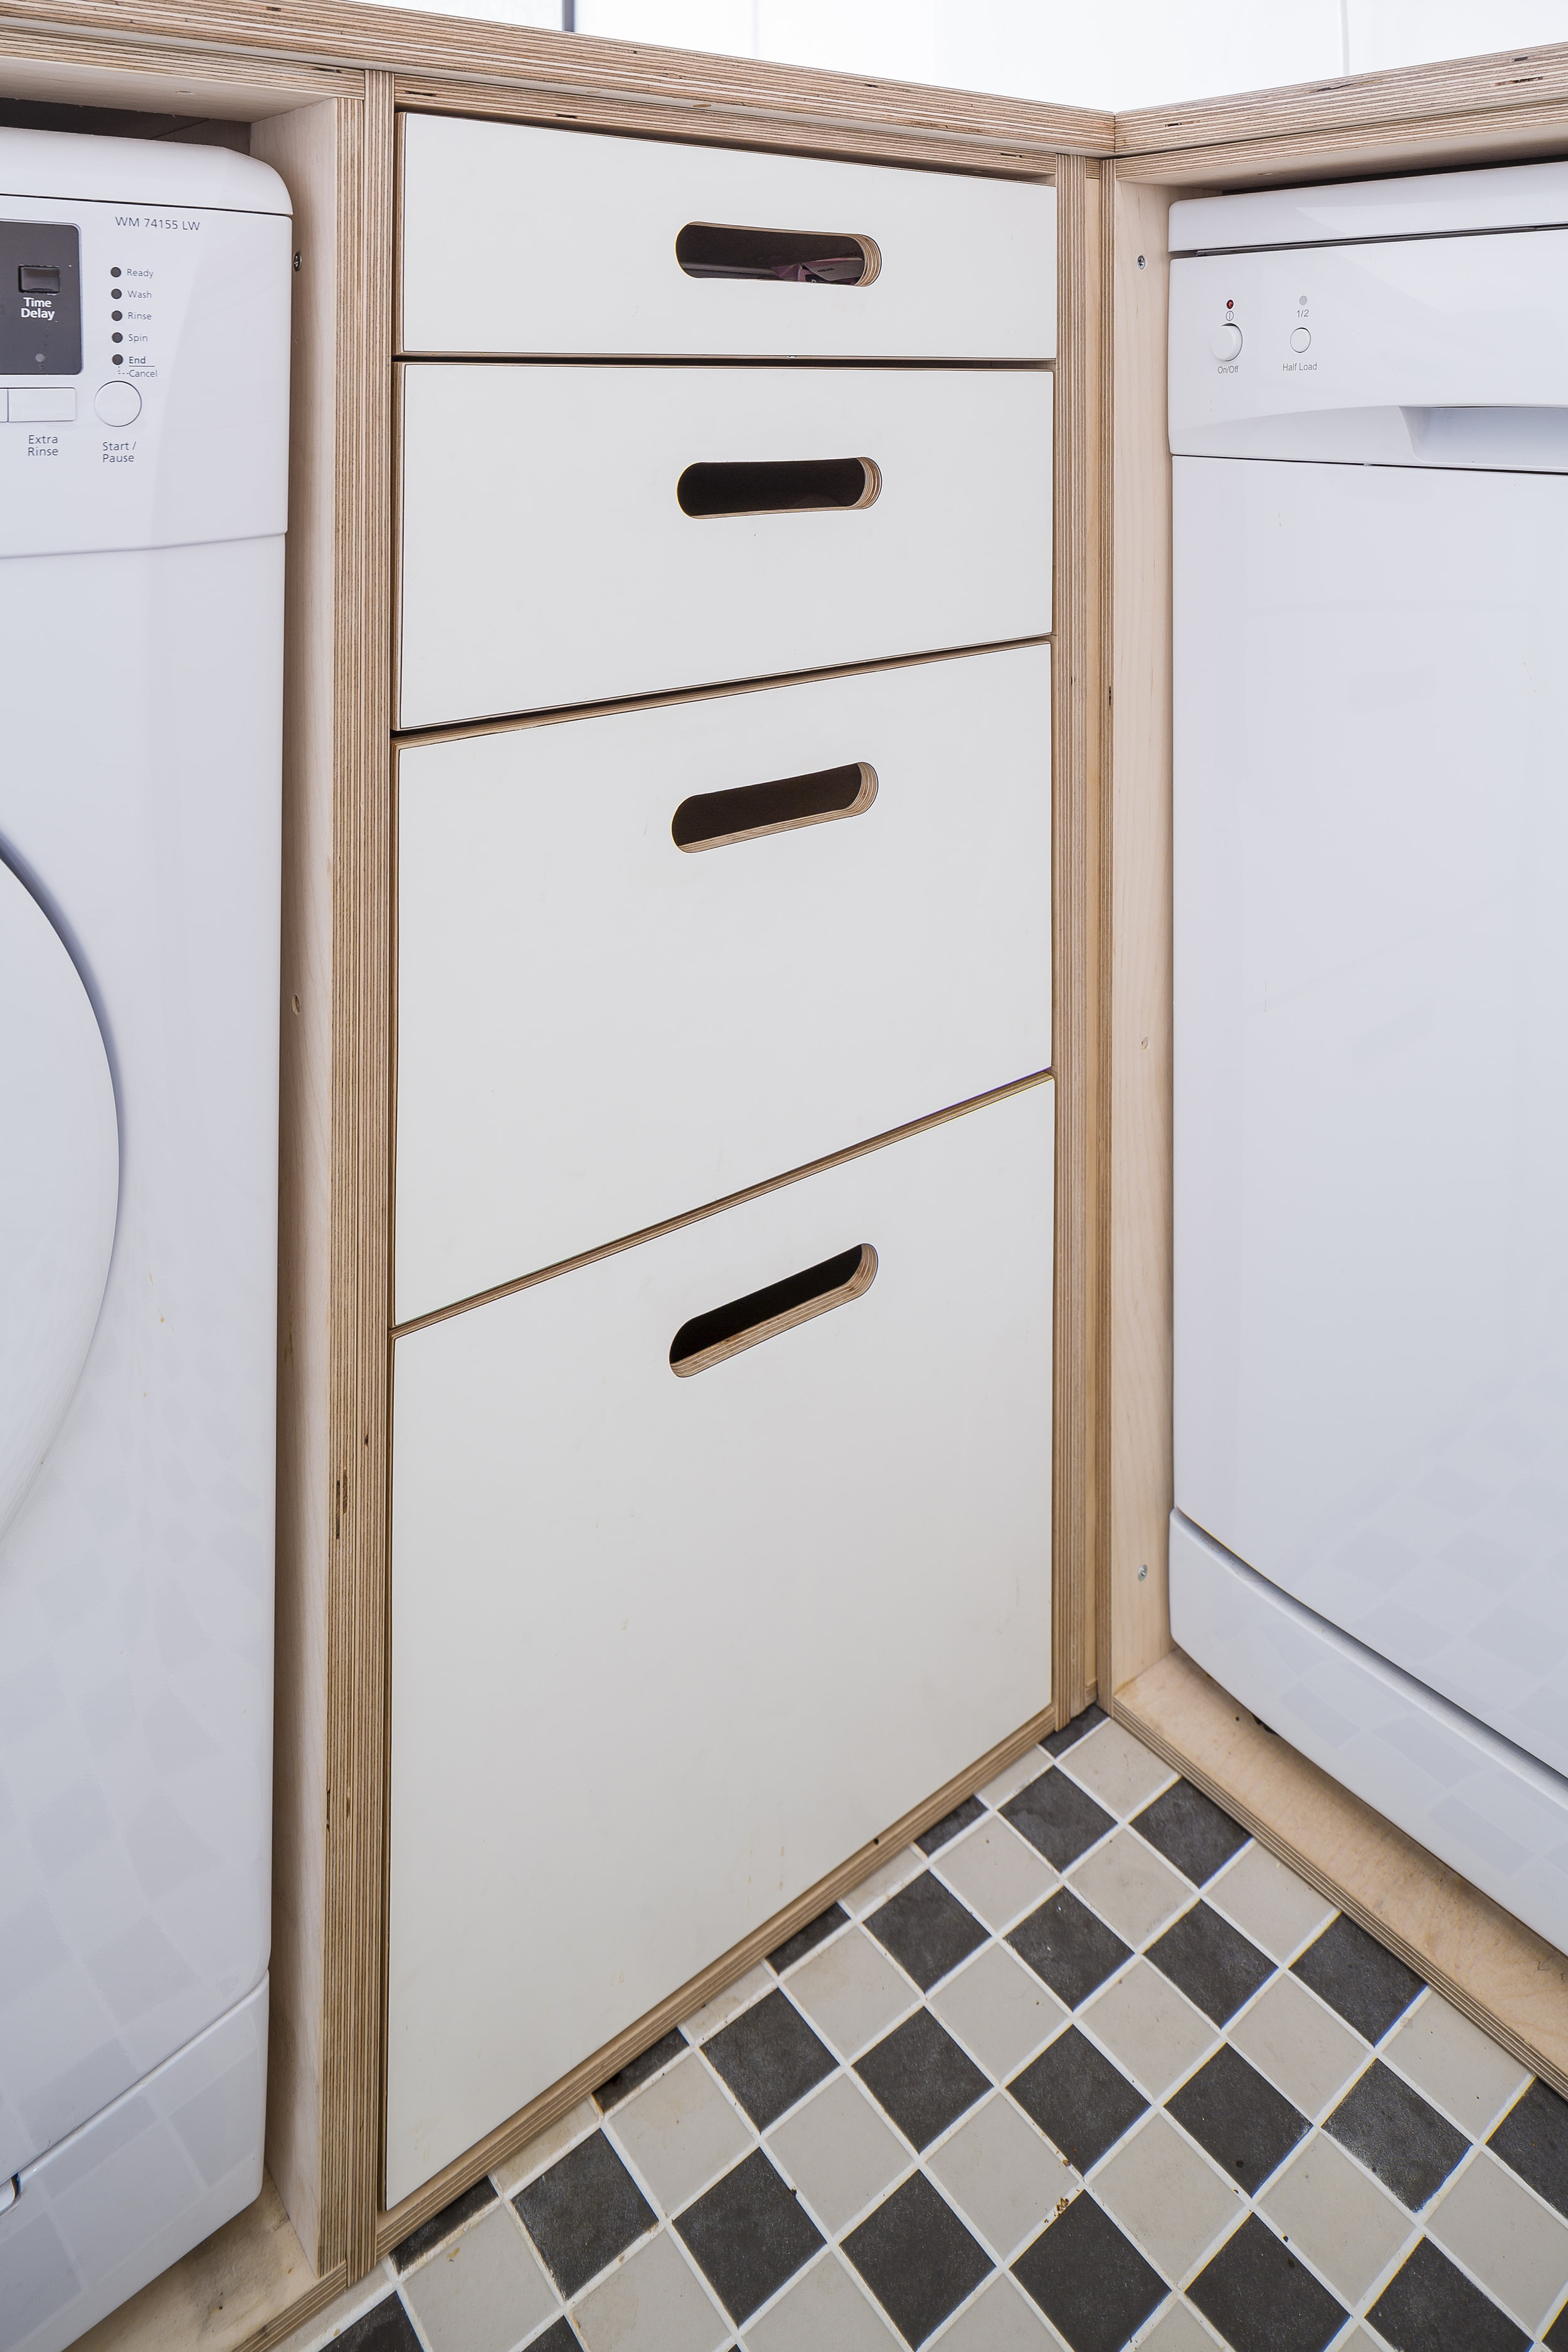 Cupboard space is fitted into every nook and cranny, making the most of a small room.